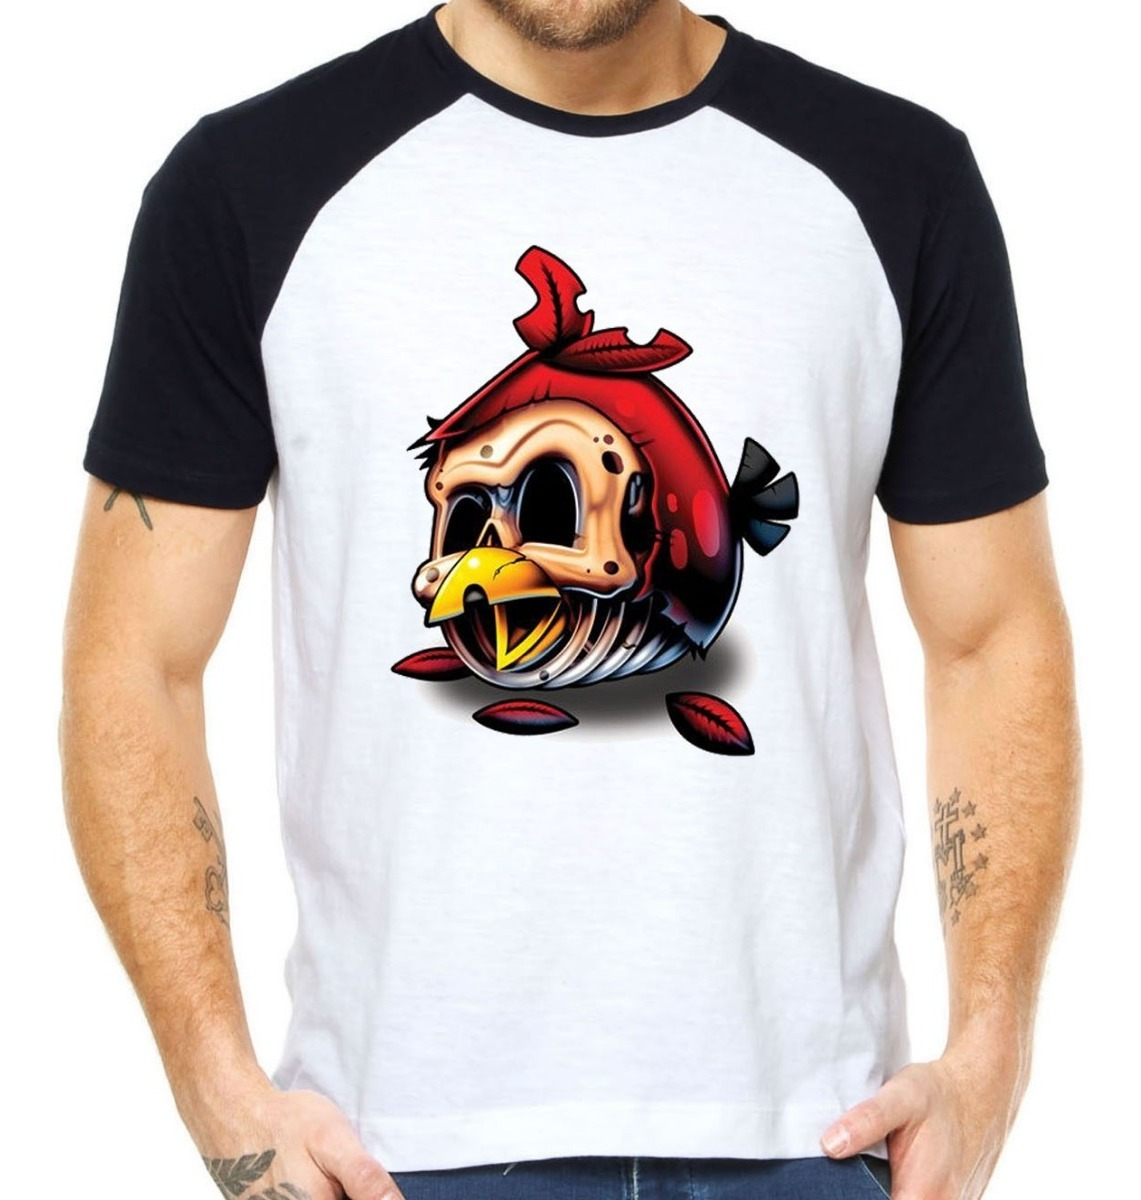 Camisetas Angry Birds Camisas Games Zumbi Zombie Android R 32